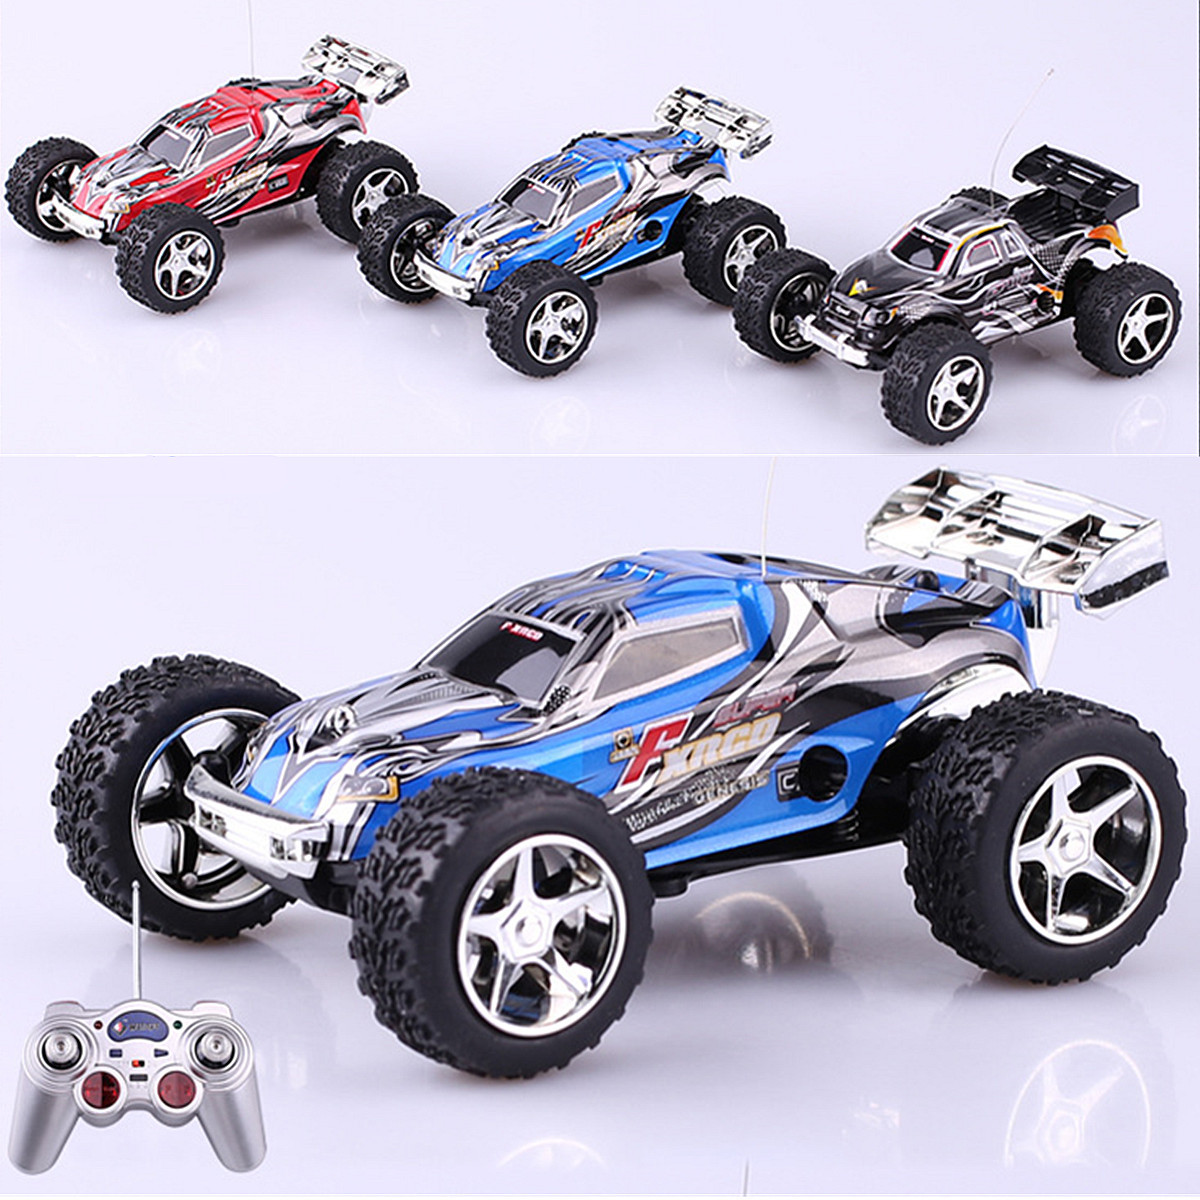 Mini 1:32 High Speed Radio Remote Control Car RC Truck Buggy Vehicle Racing Toy